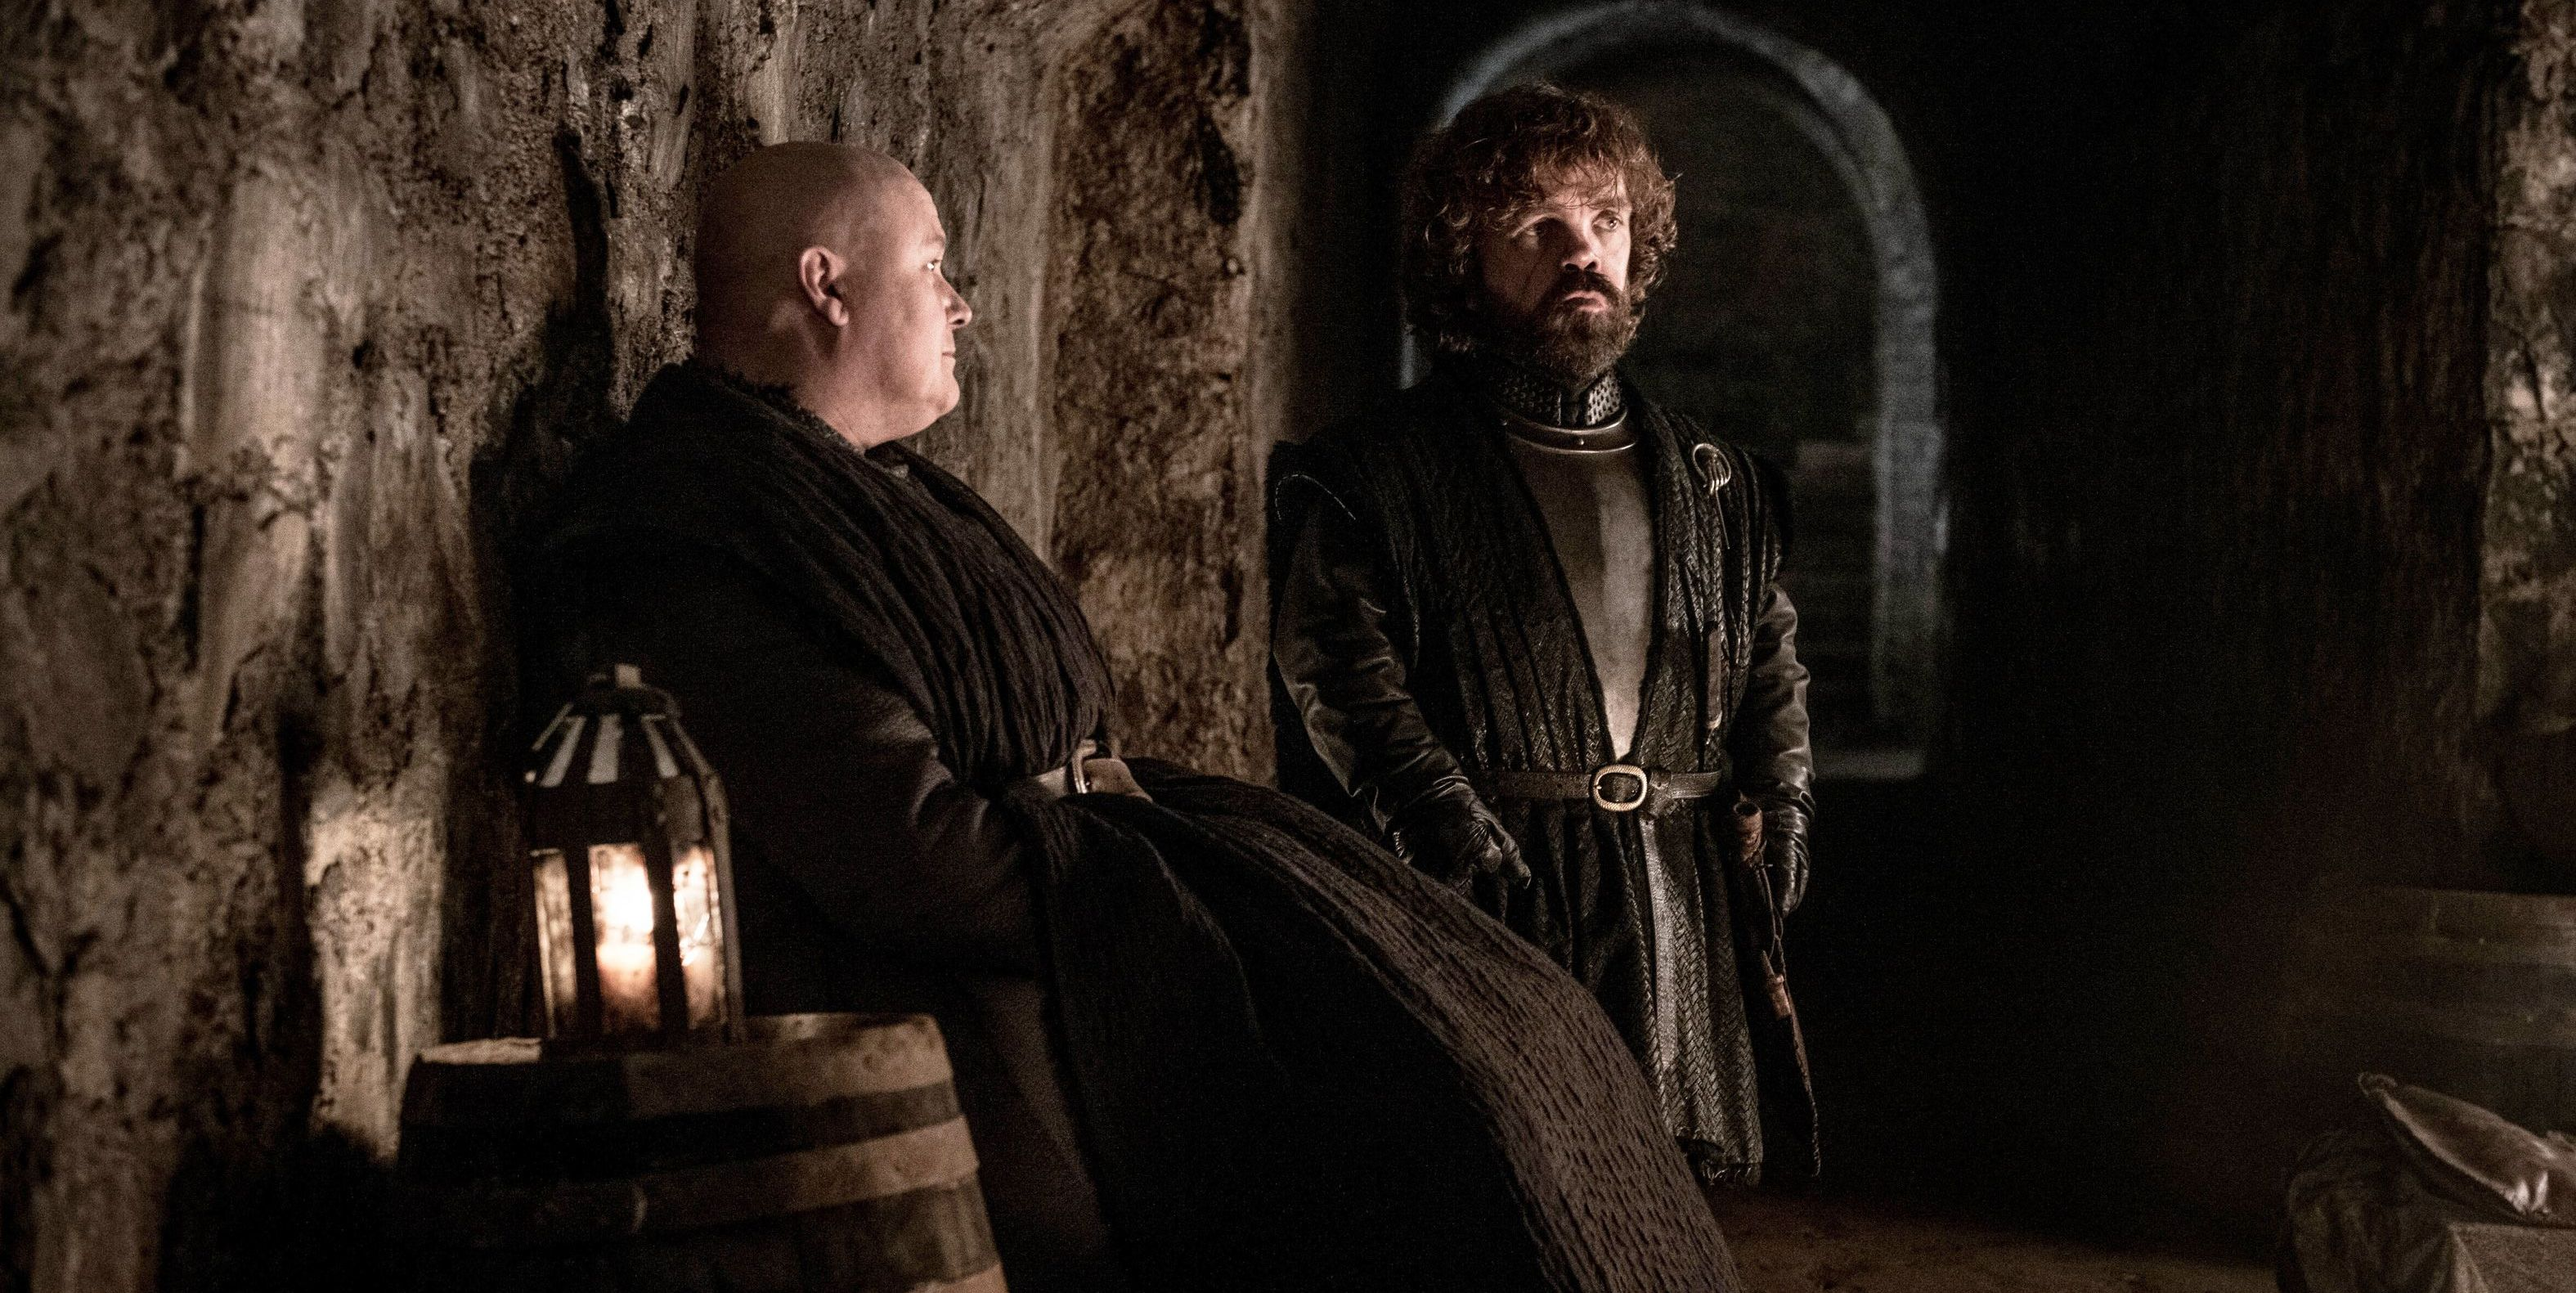 Game of Thrones, Season 8, Episode 3, Varys, Tyrion Lannister